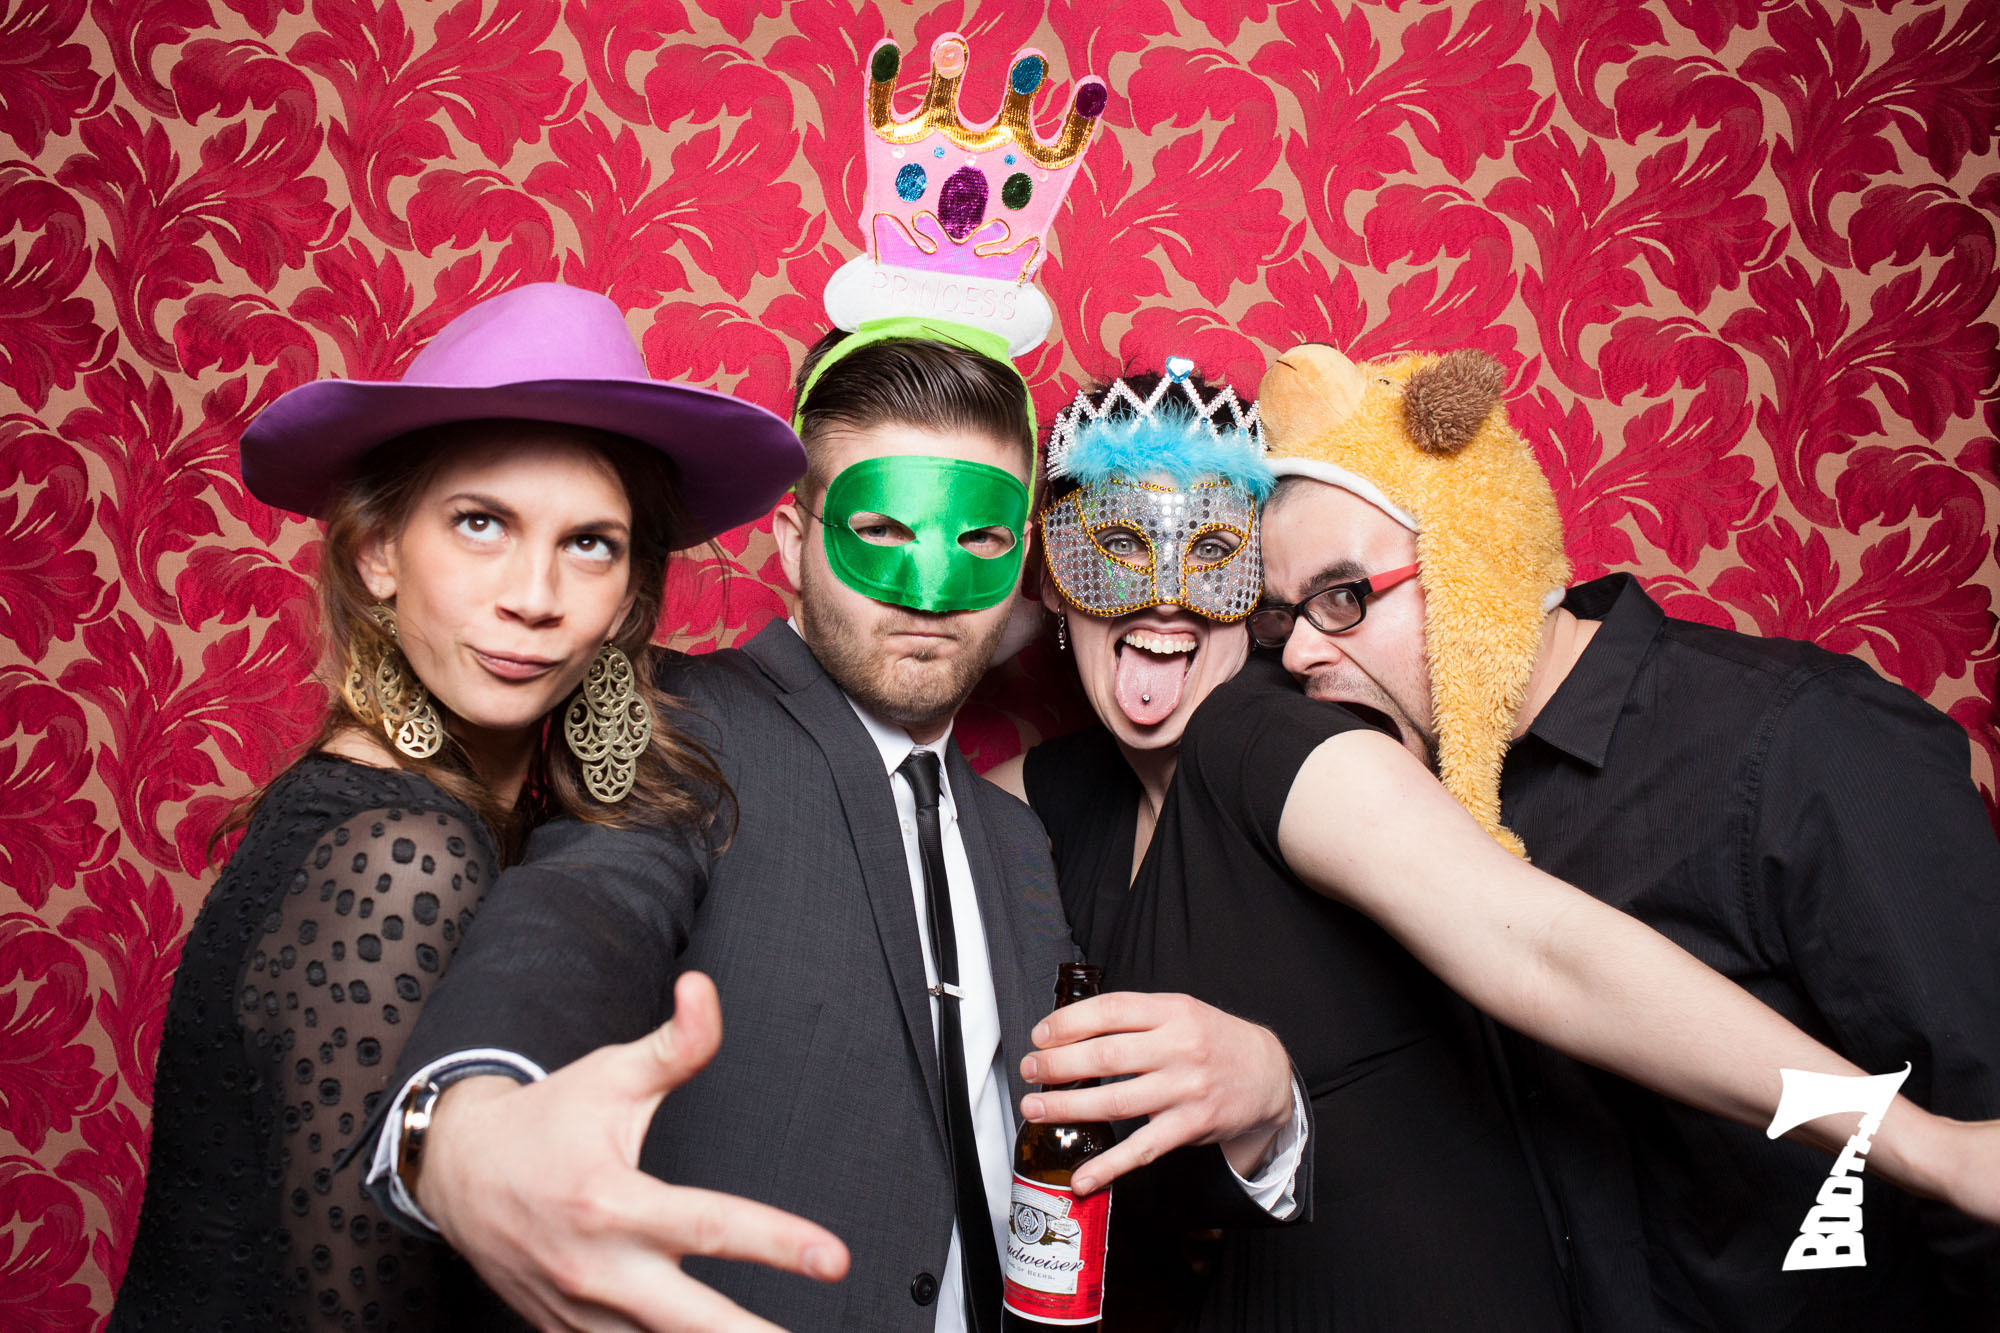 beer-friendly-photo-booth